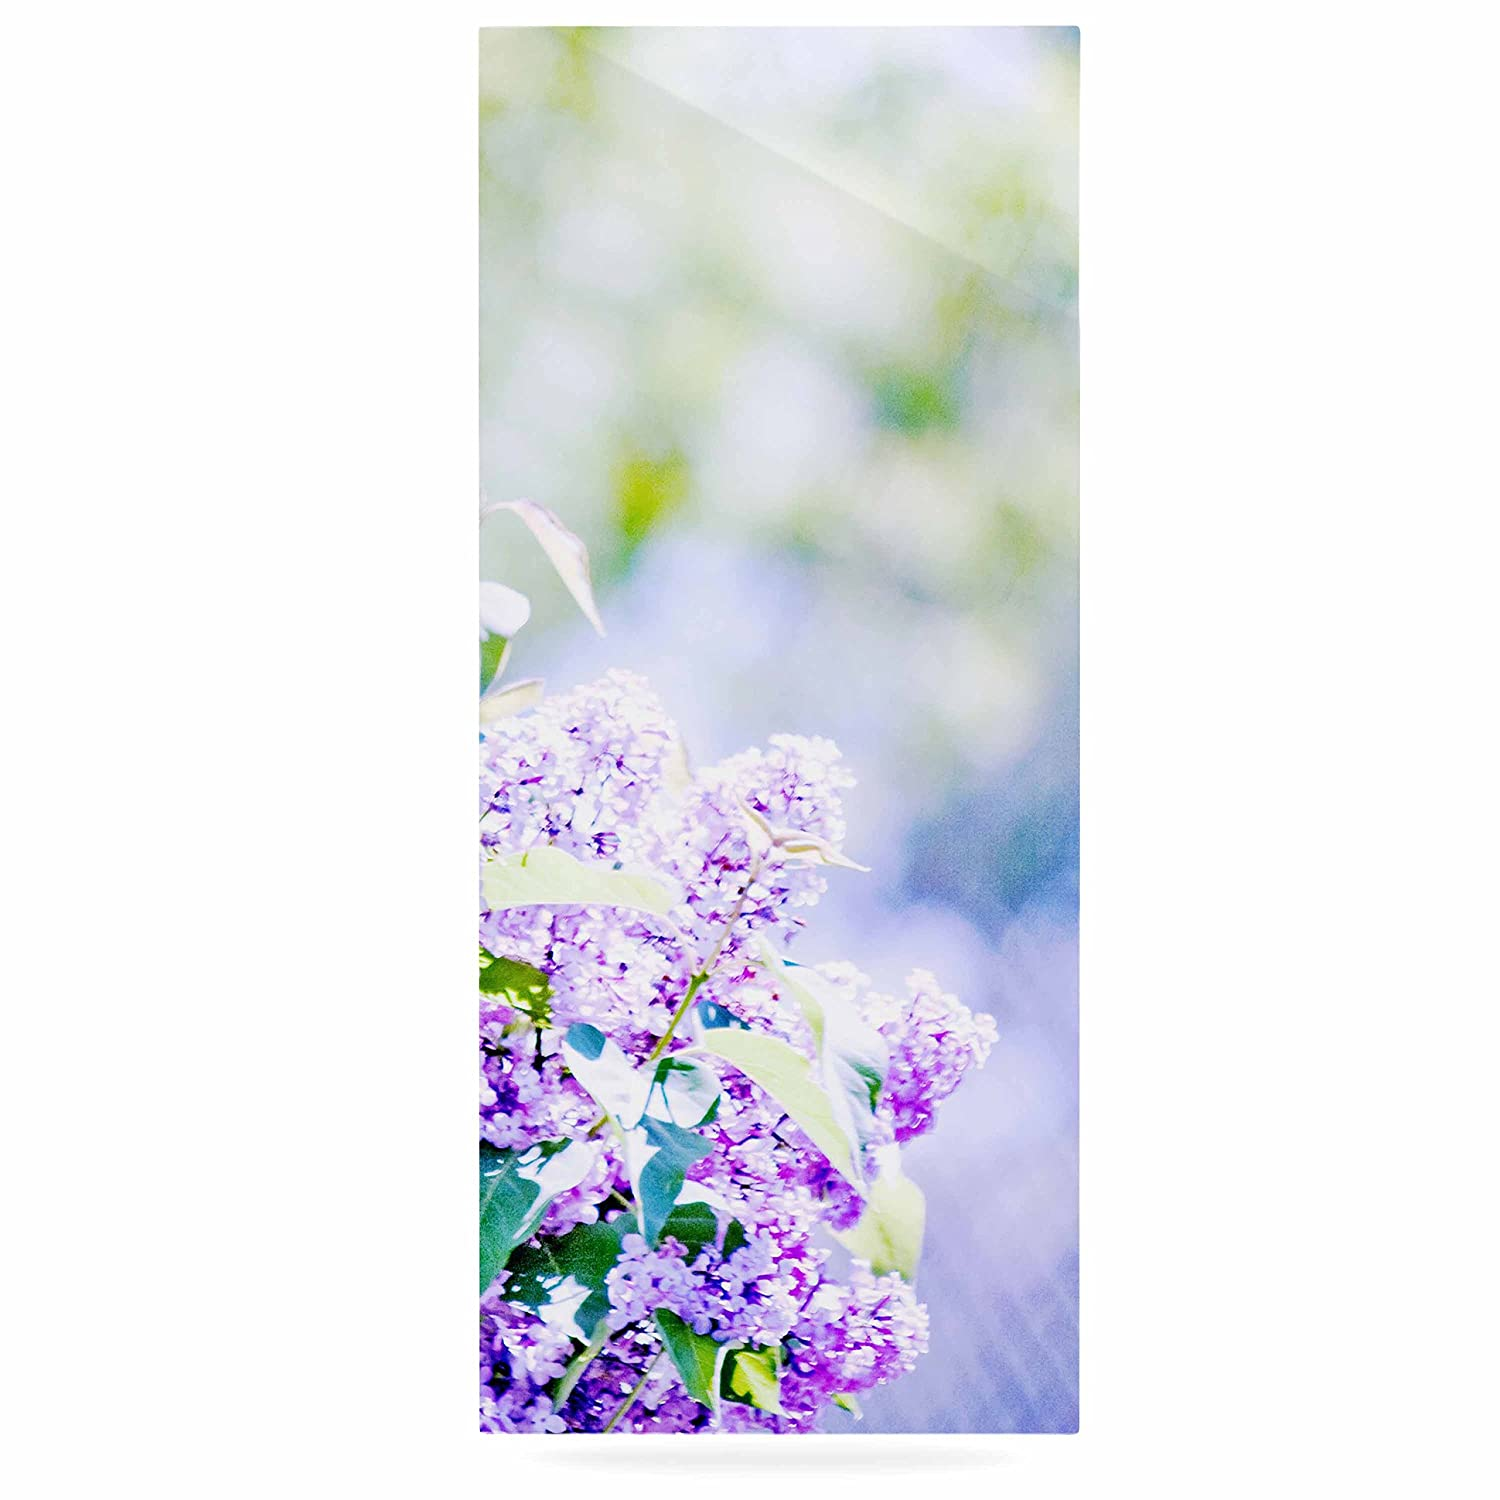 24 x 36 Kess InHouse Sylvia Coomes Hazy Purple Flowers Lavender Nature Luxe Rectangle Panel